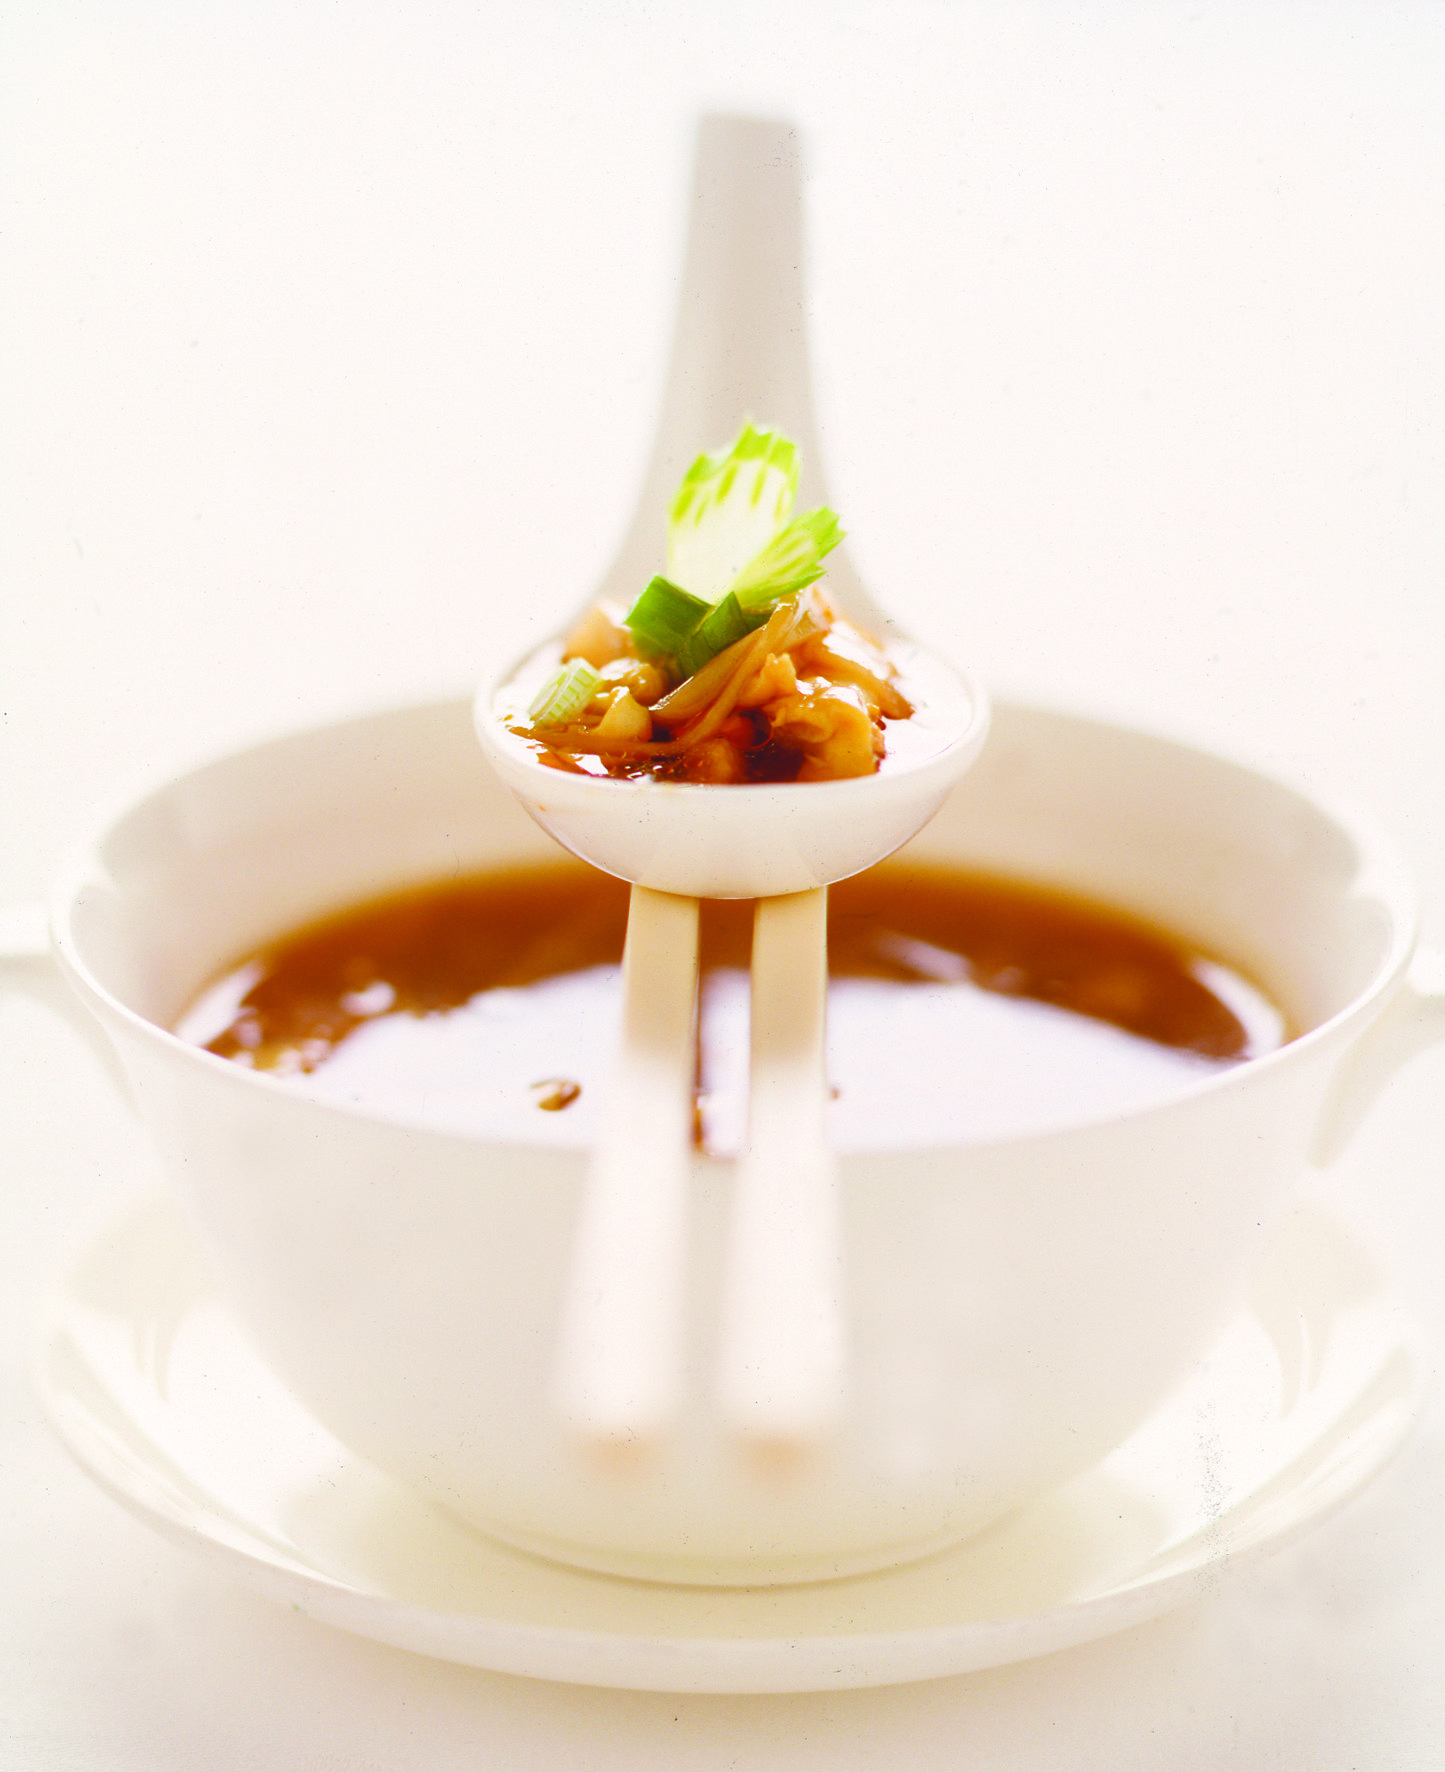 Hot Sour Soup Singapore Restaurants Dining In Singapore At Goodwood Park Hotel Cantonese Food Hot And Sour Soup Food